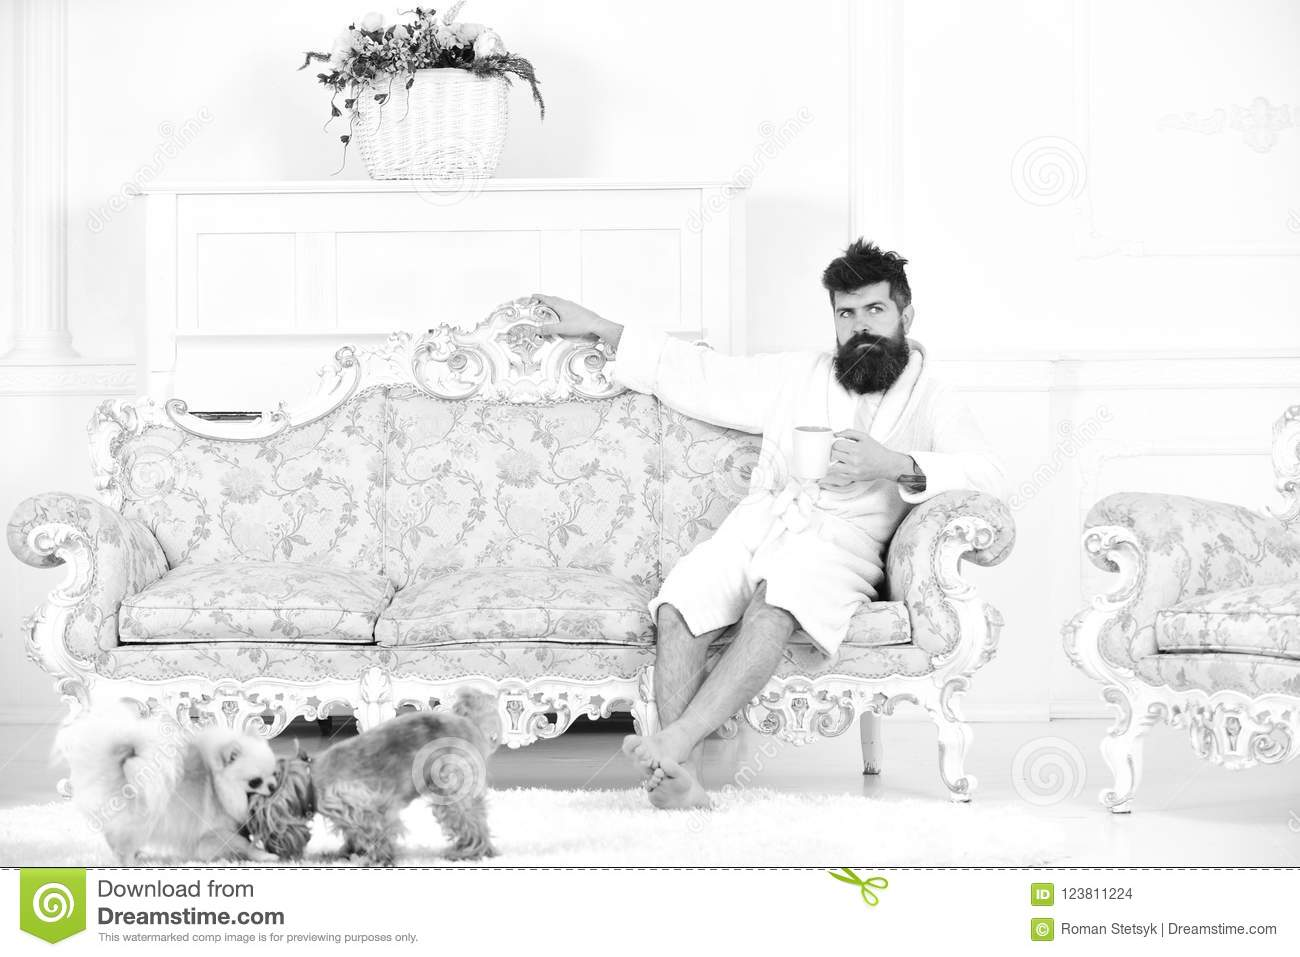 Man with beard and mustache enjoys morning while sitting on luxury sofa. Elite leisure concept. Man on dreamy face in